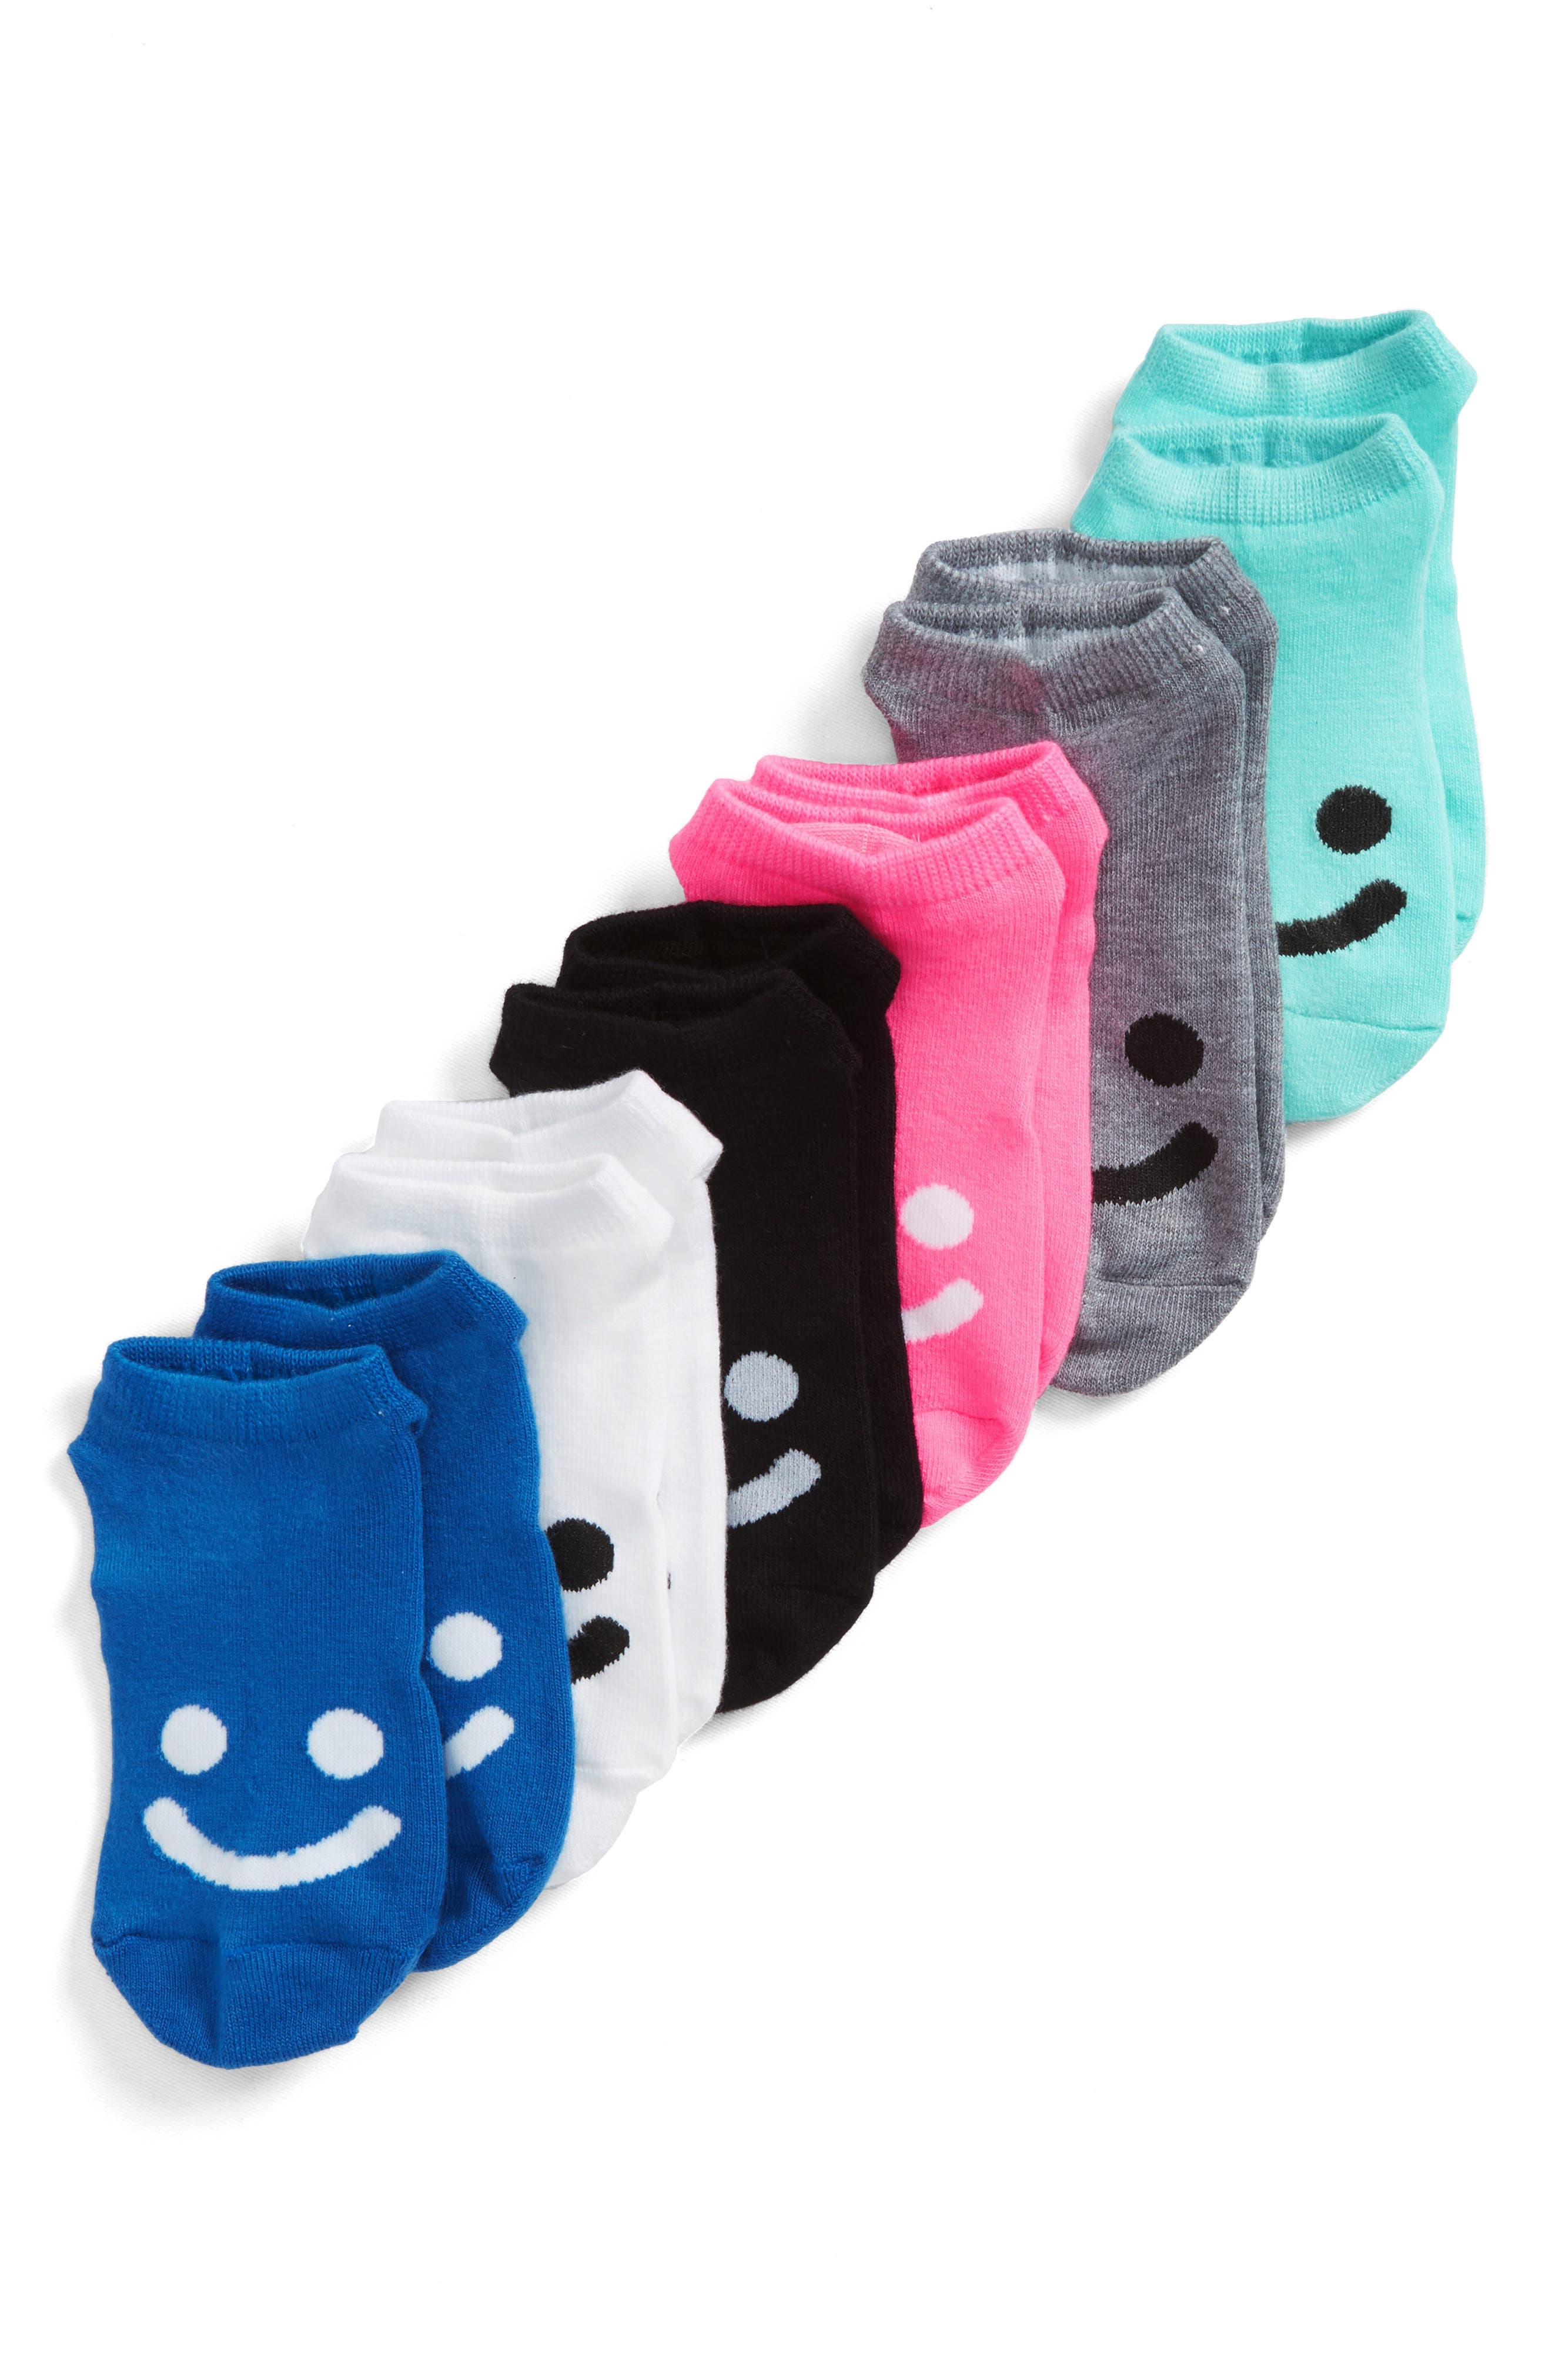 6-Pack All Smiles No-Show Socks,                         Main,                         color, Blue